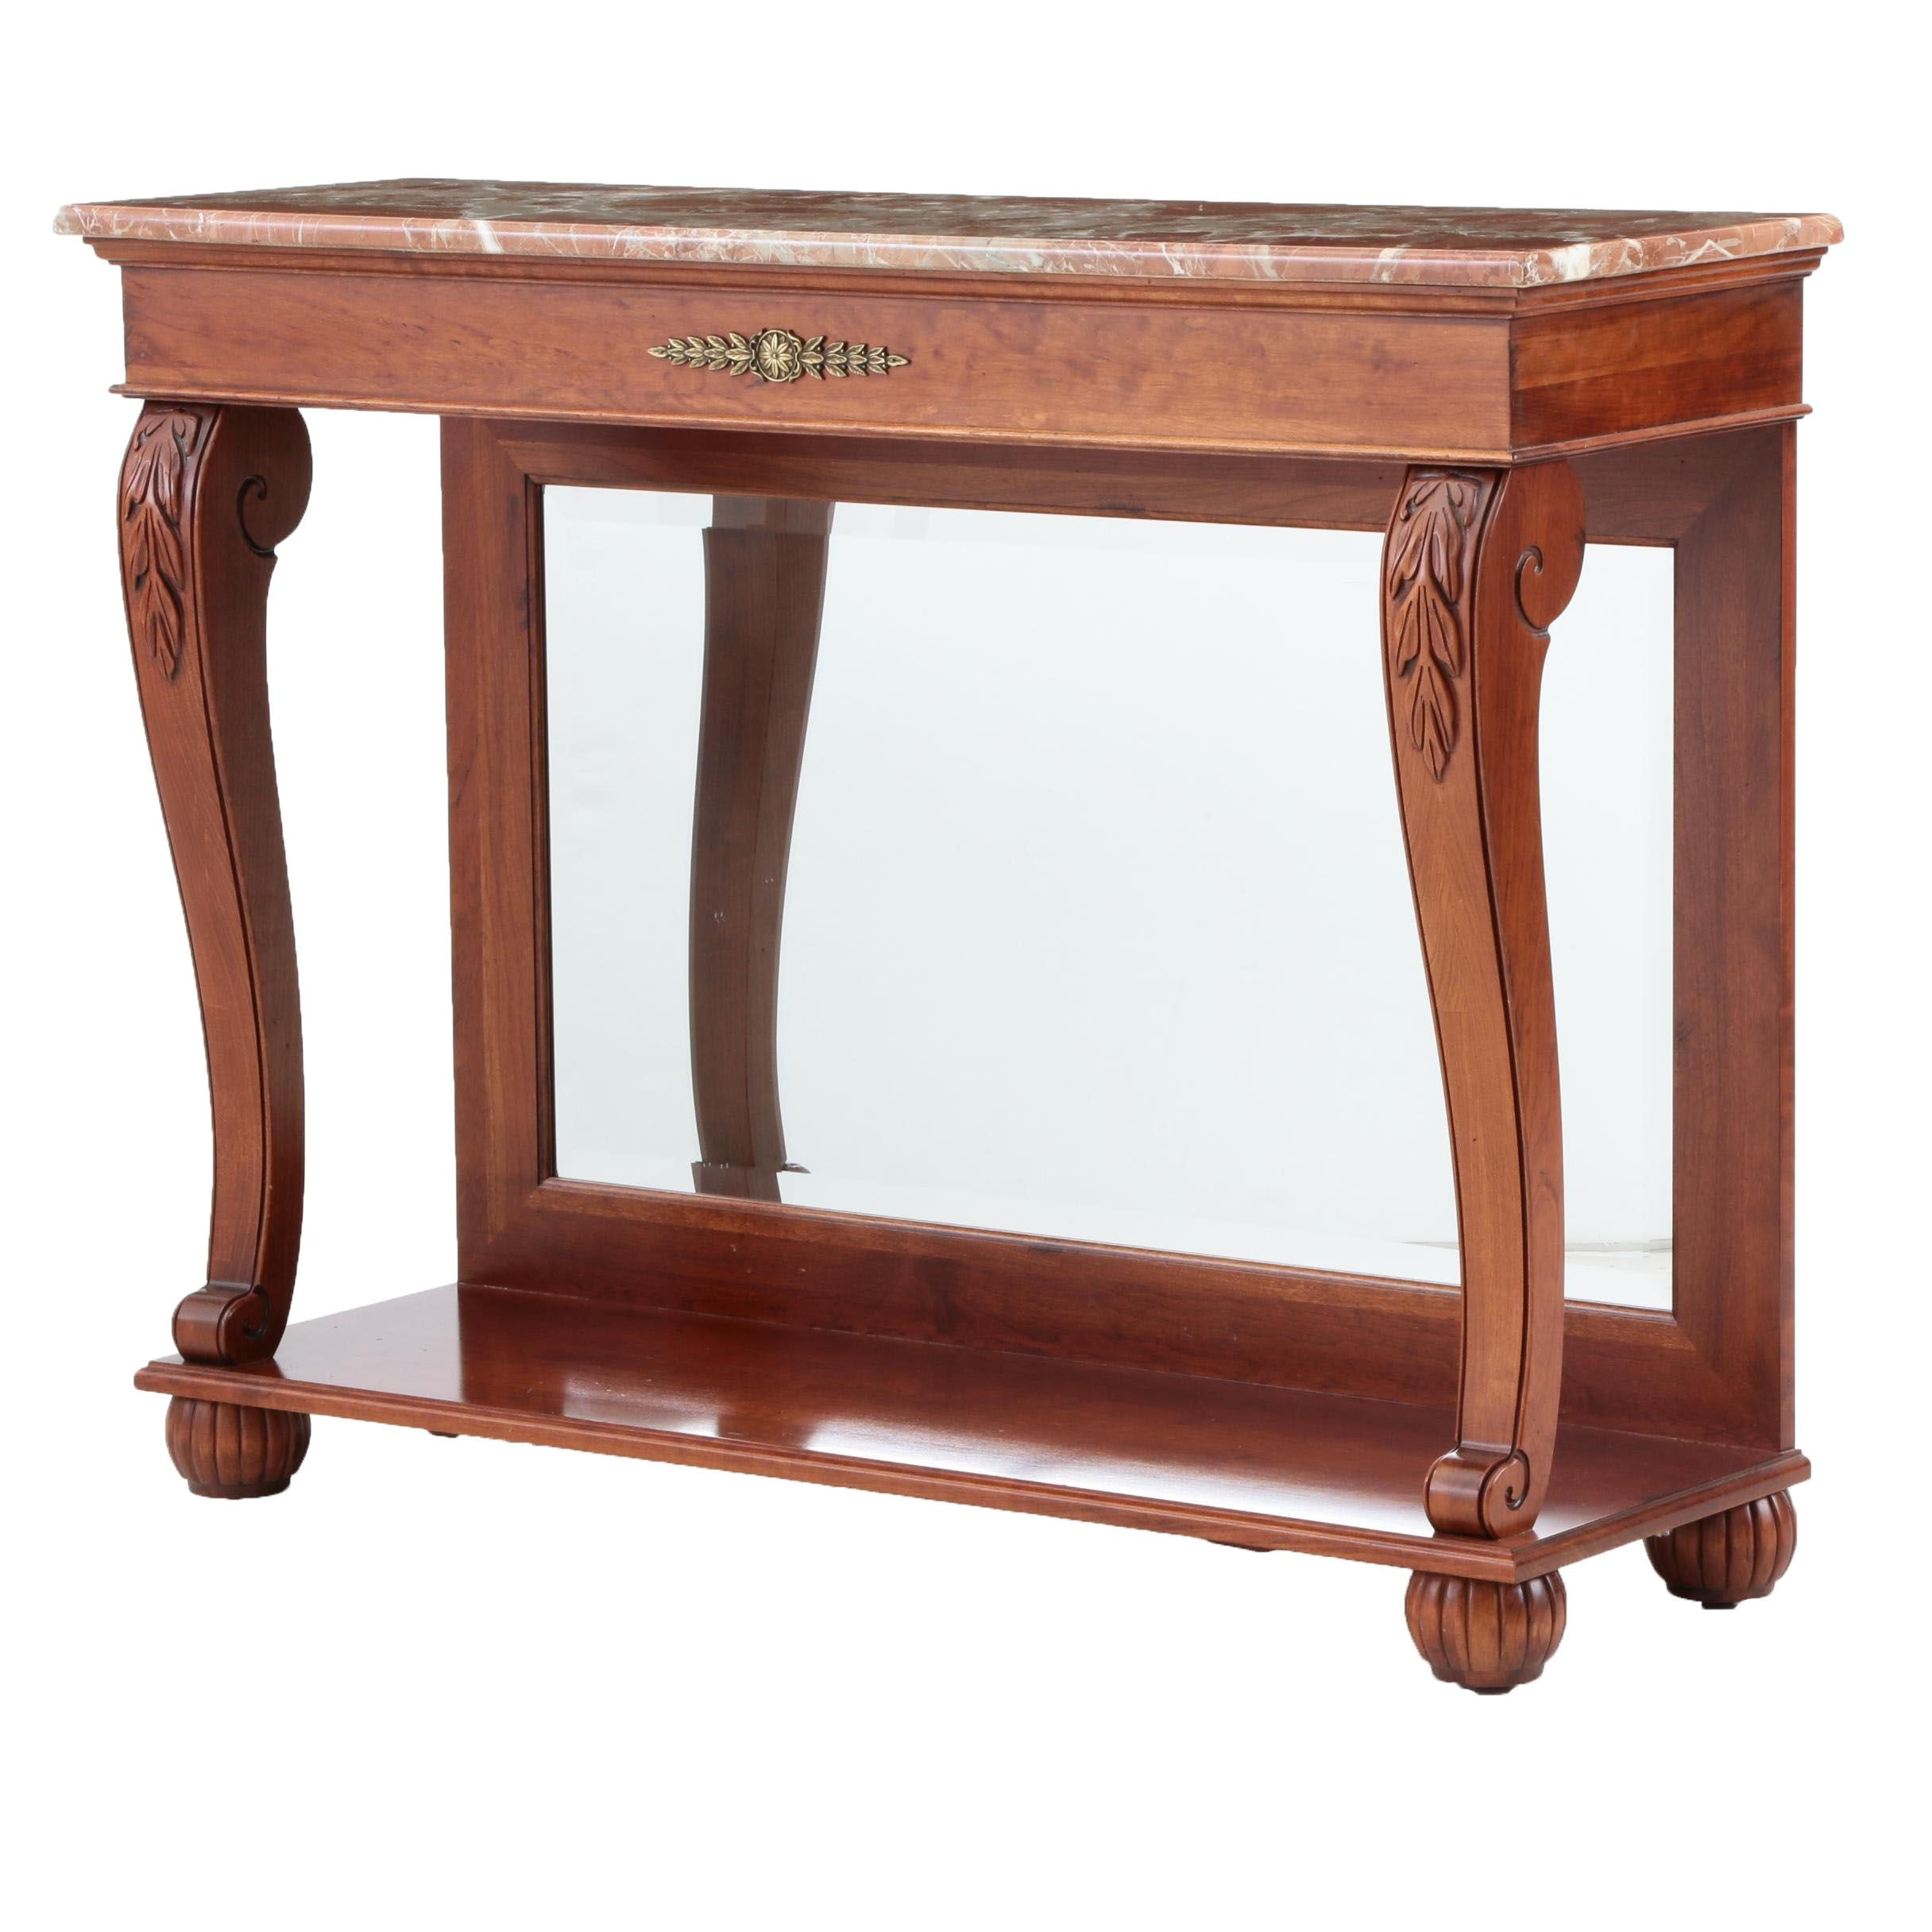 American Empire Style Console Table By Ethan Allen